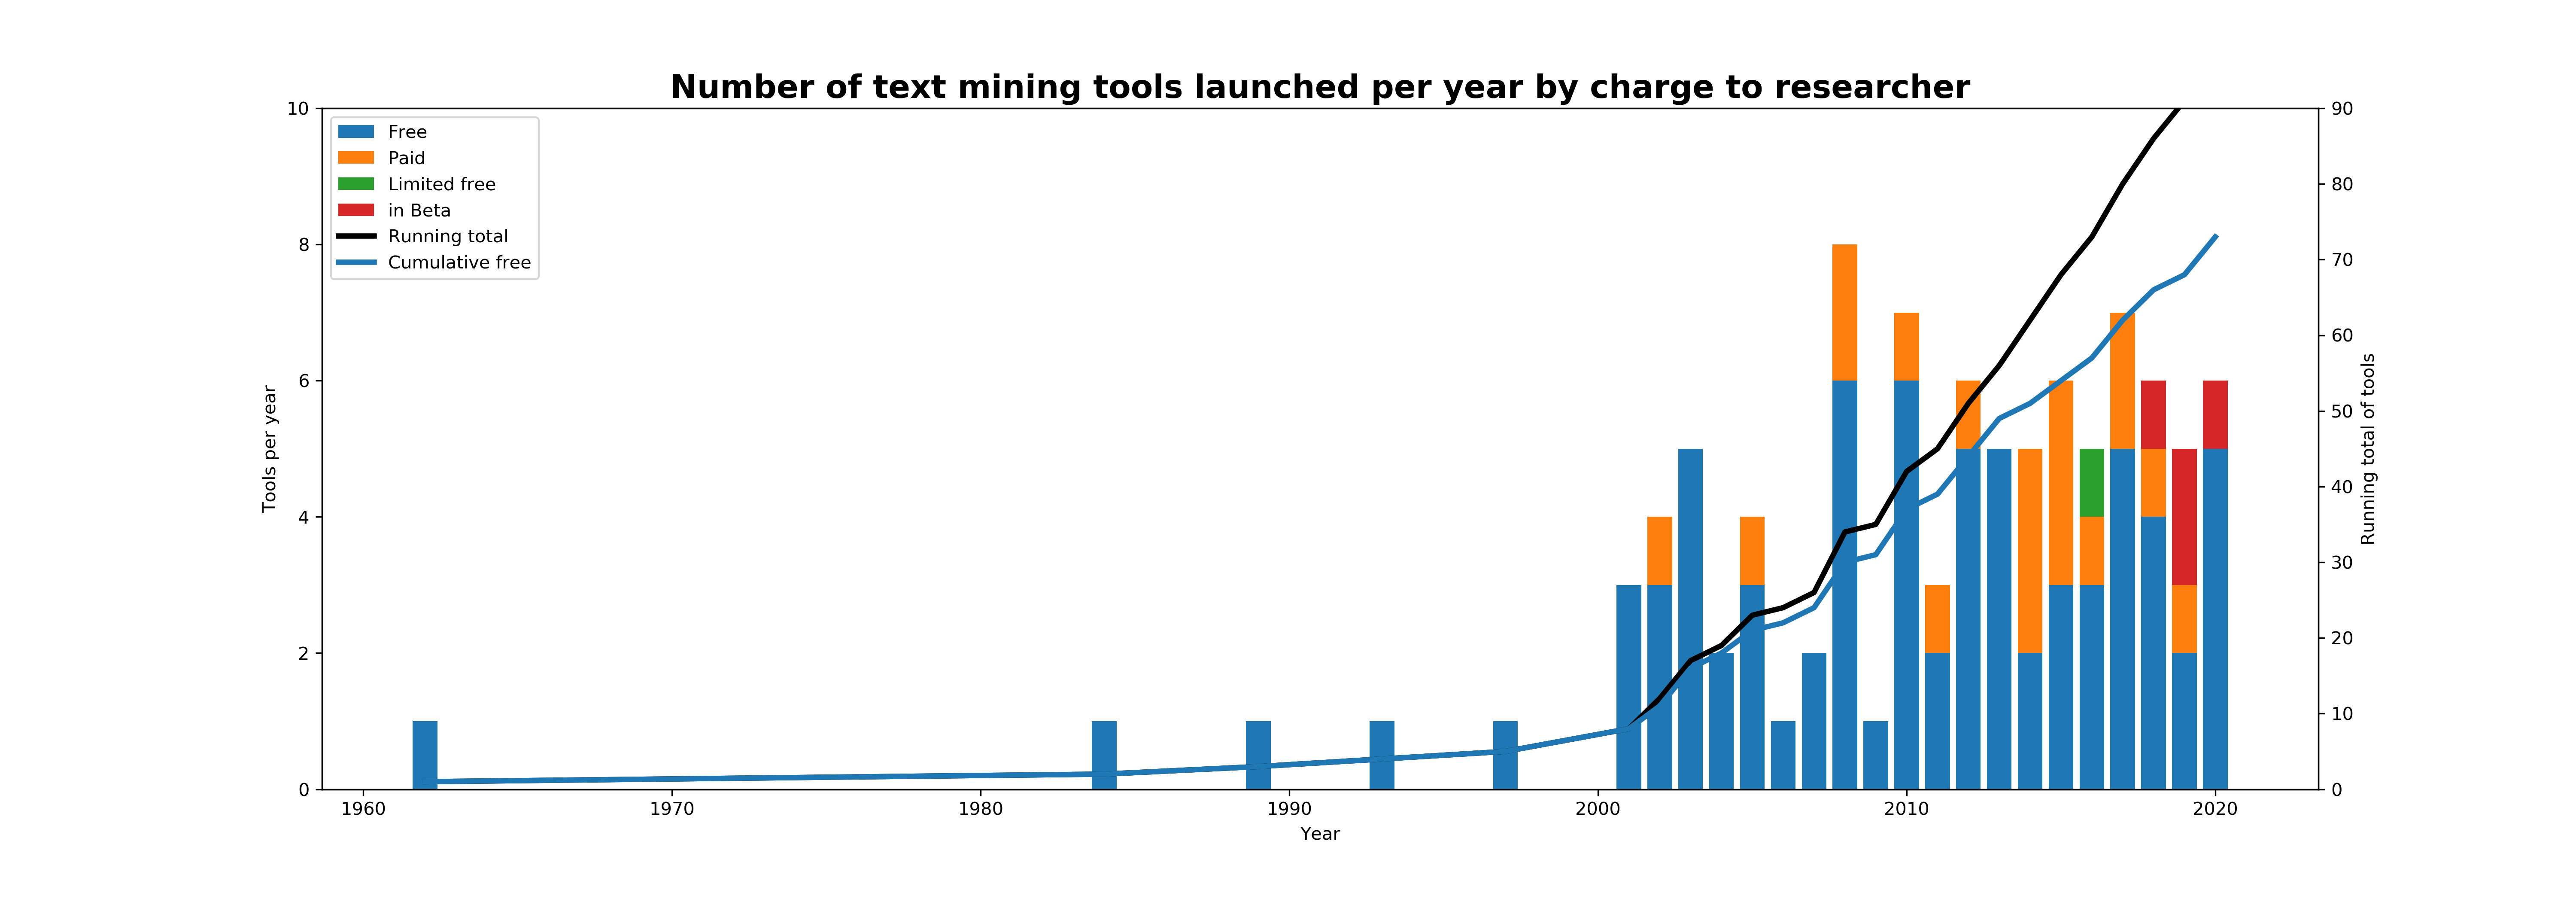 Text mining tools over time